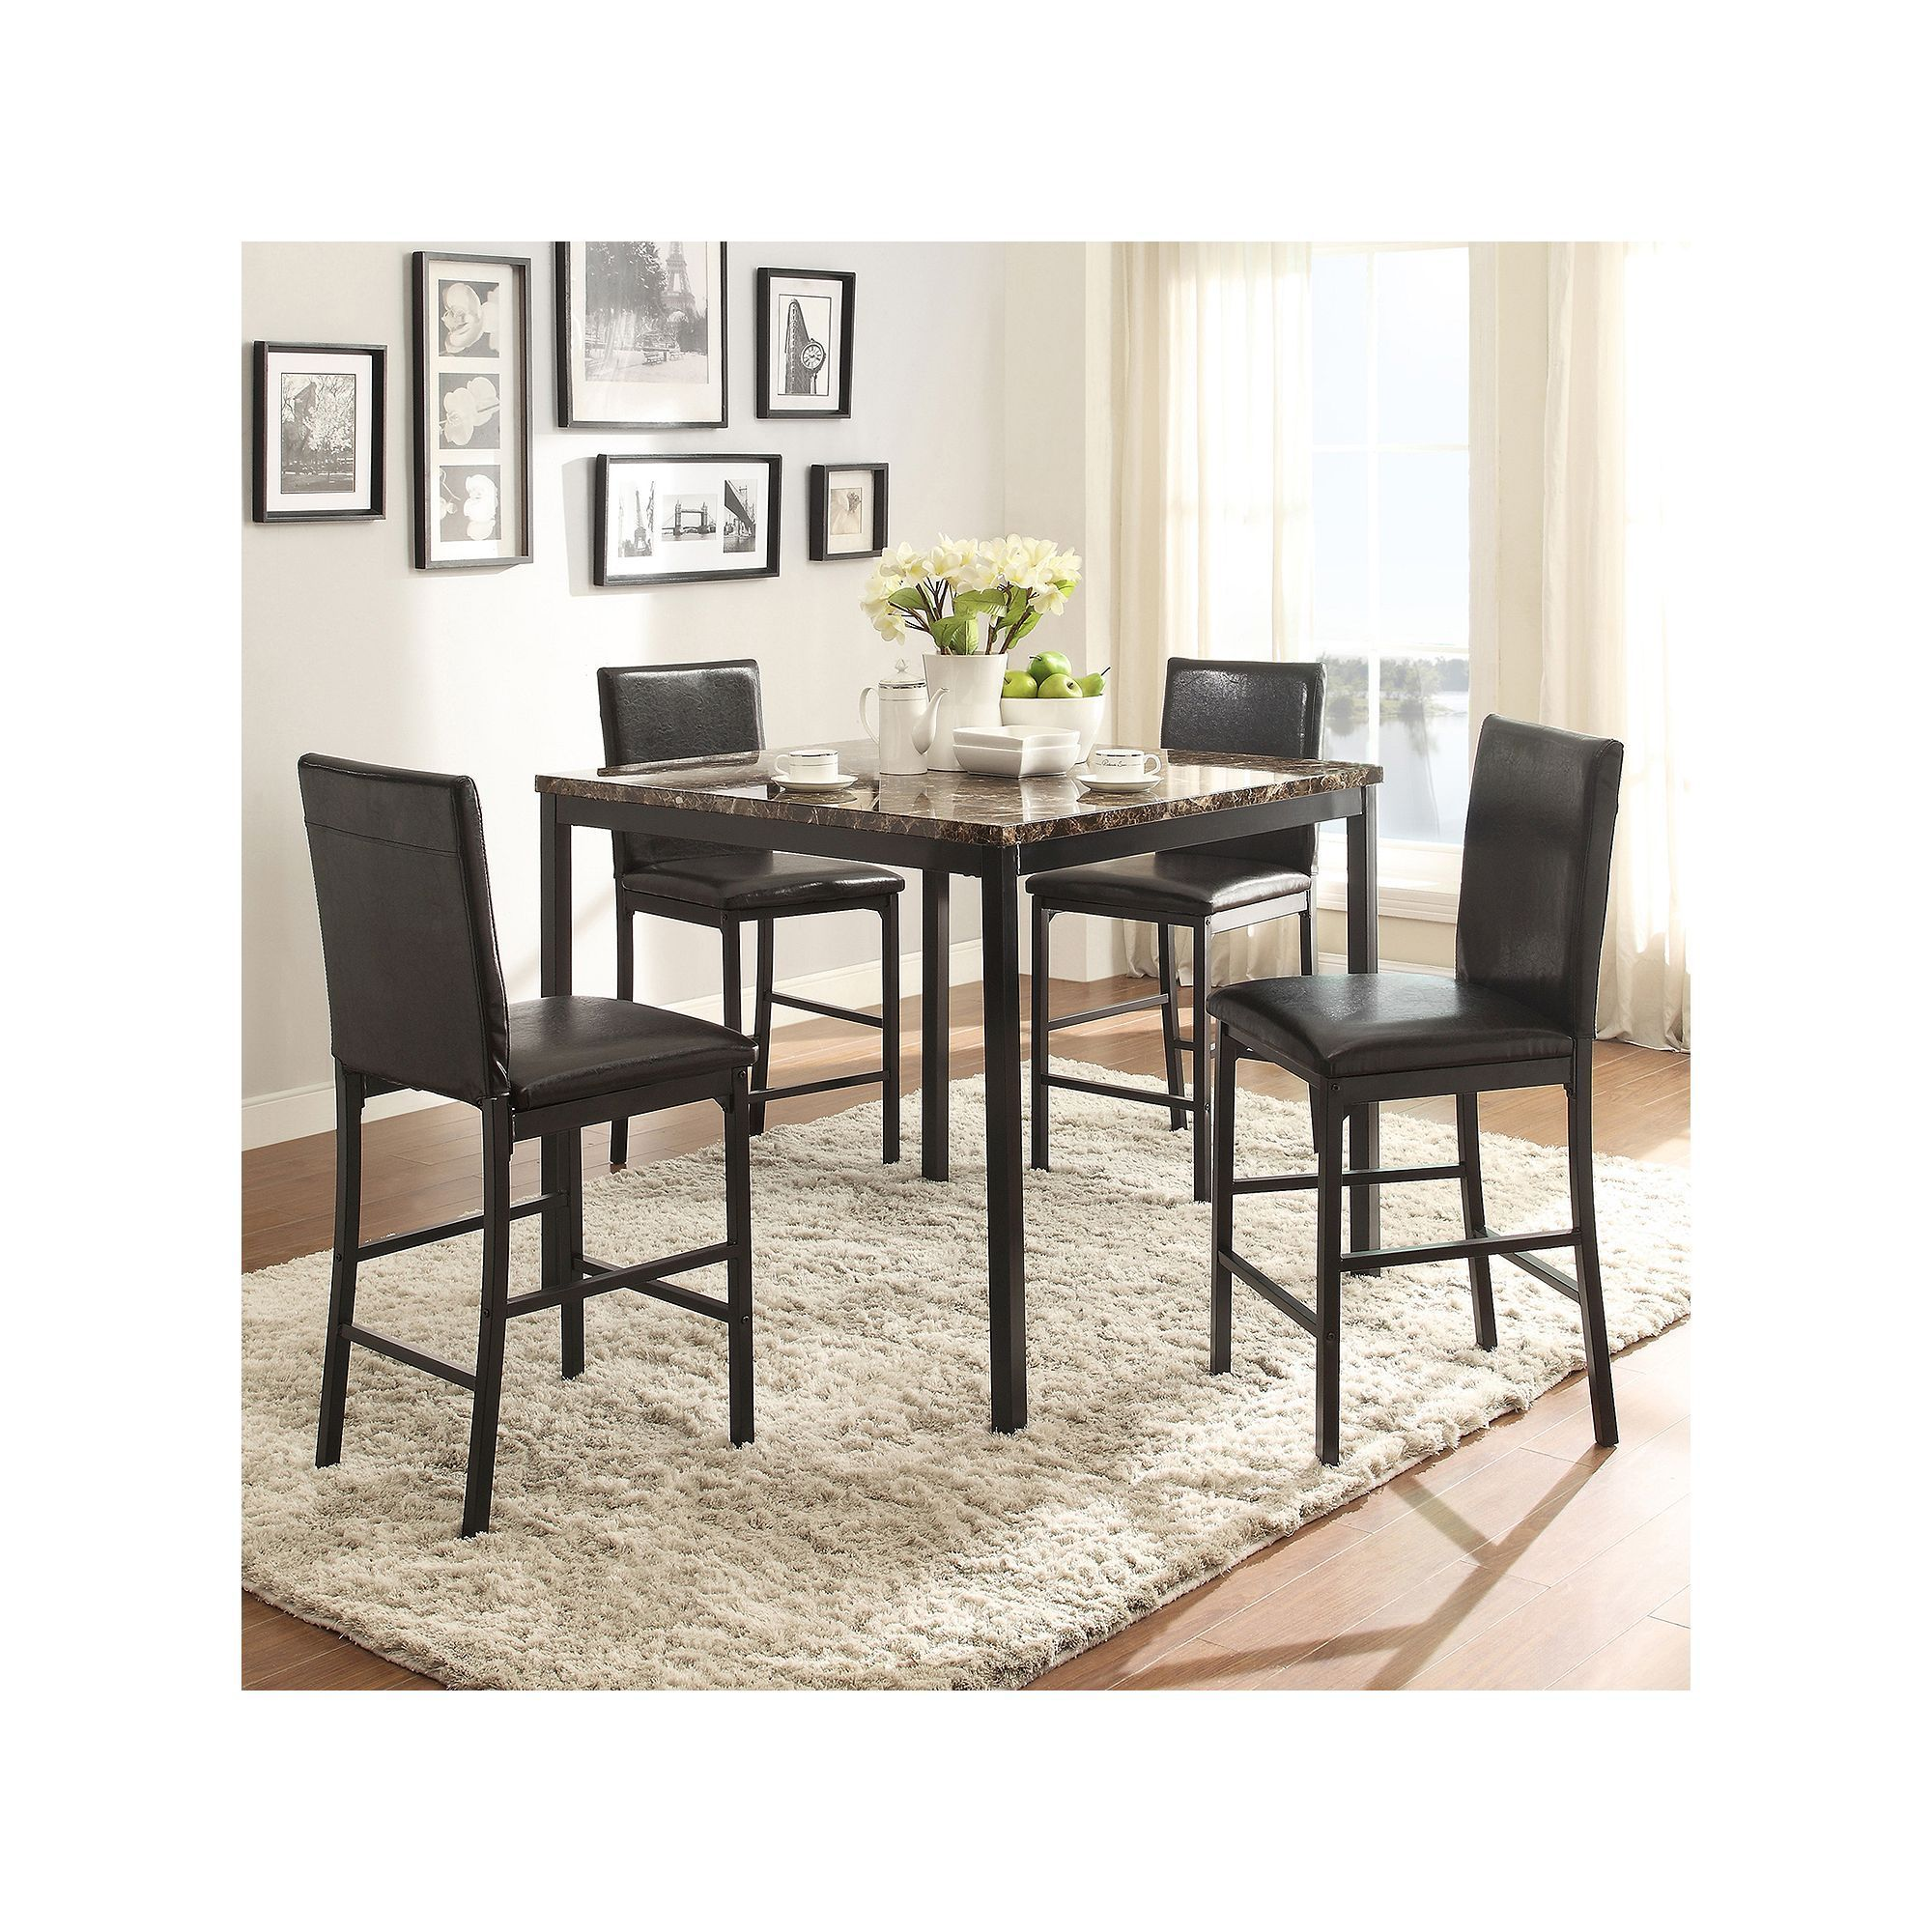 Homevance HomeVance Catania 5-piece Dining Table & Counter Chair Set ...